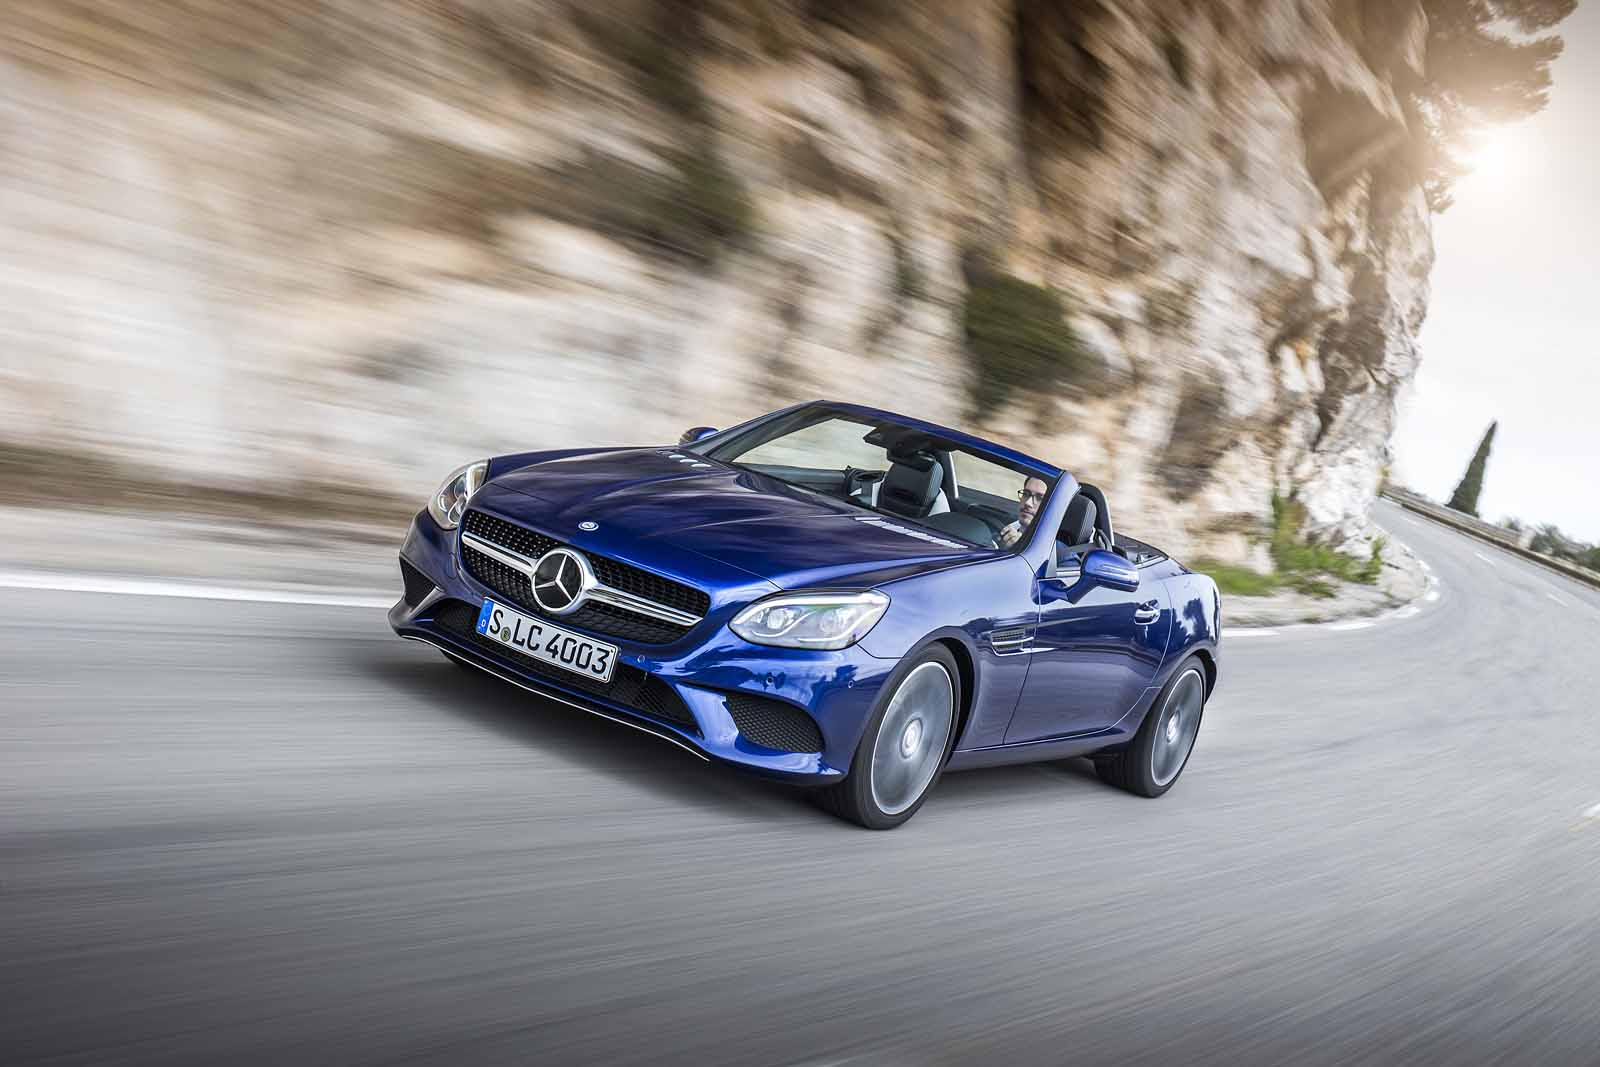 2017 mercedes benz slc 300 roadster review